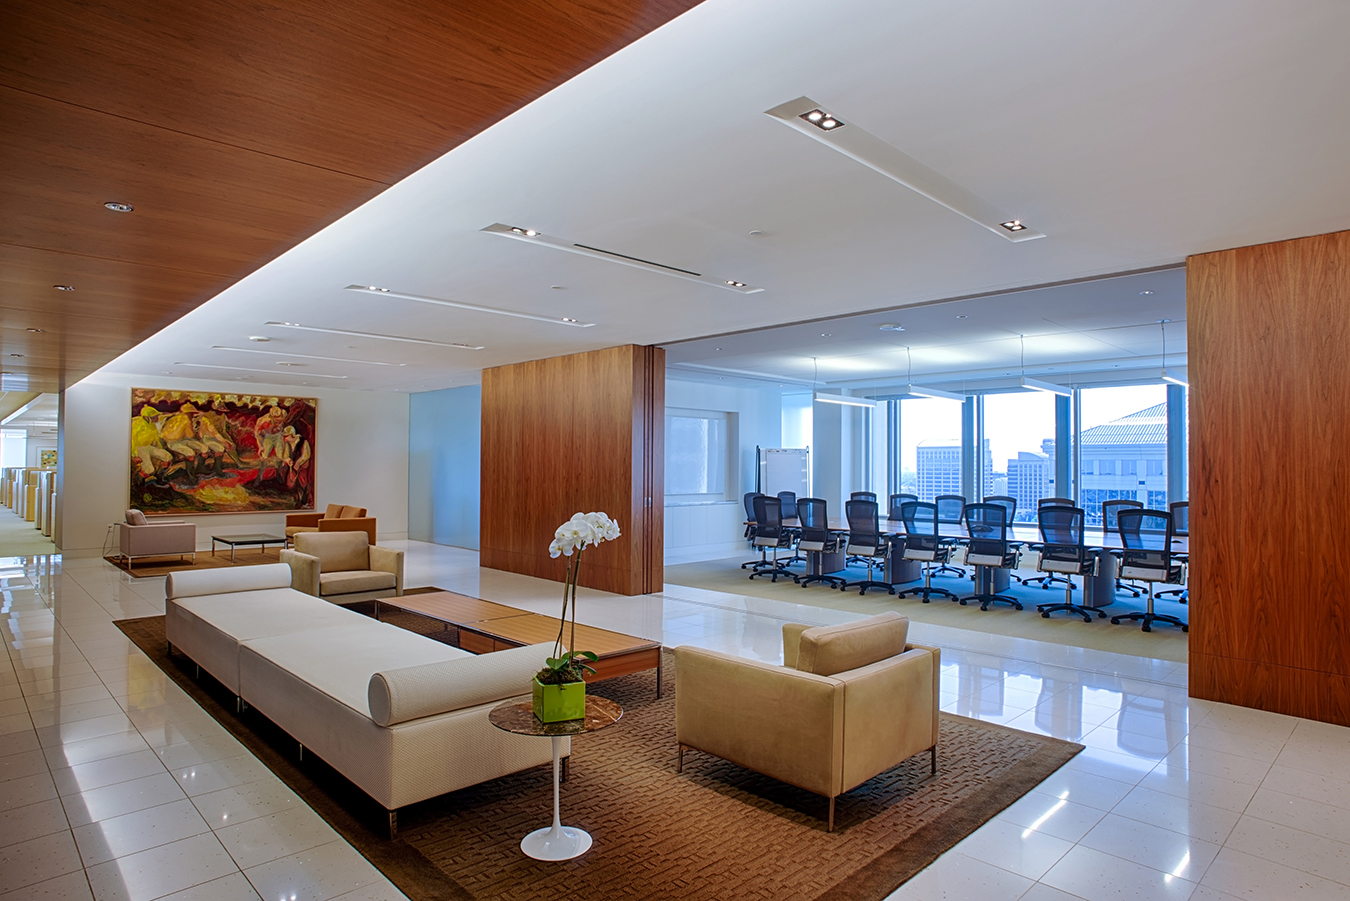 Dallas-Parkway-Office-Building-Interior-With-Conference-Room-View